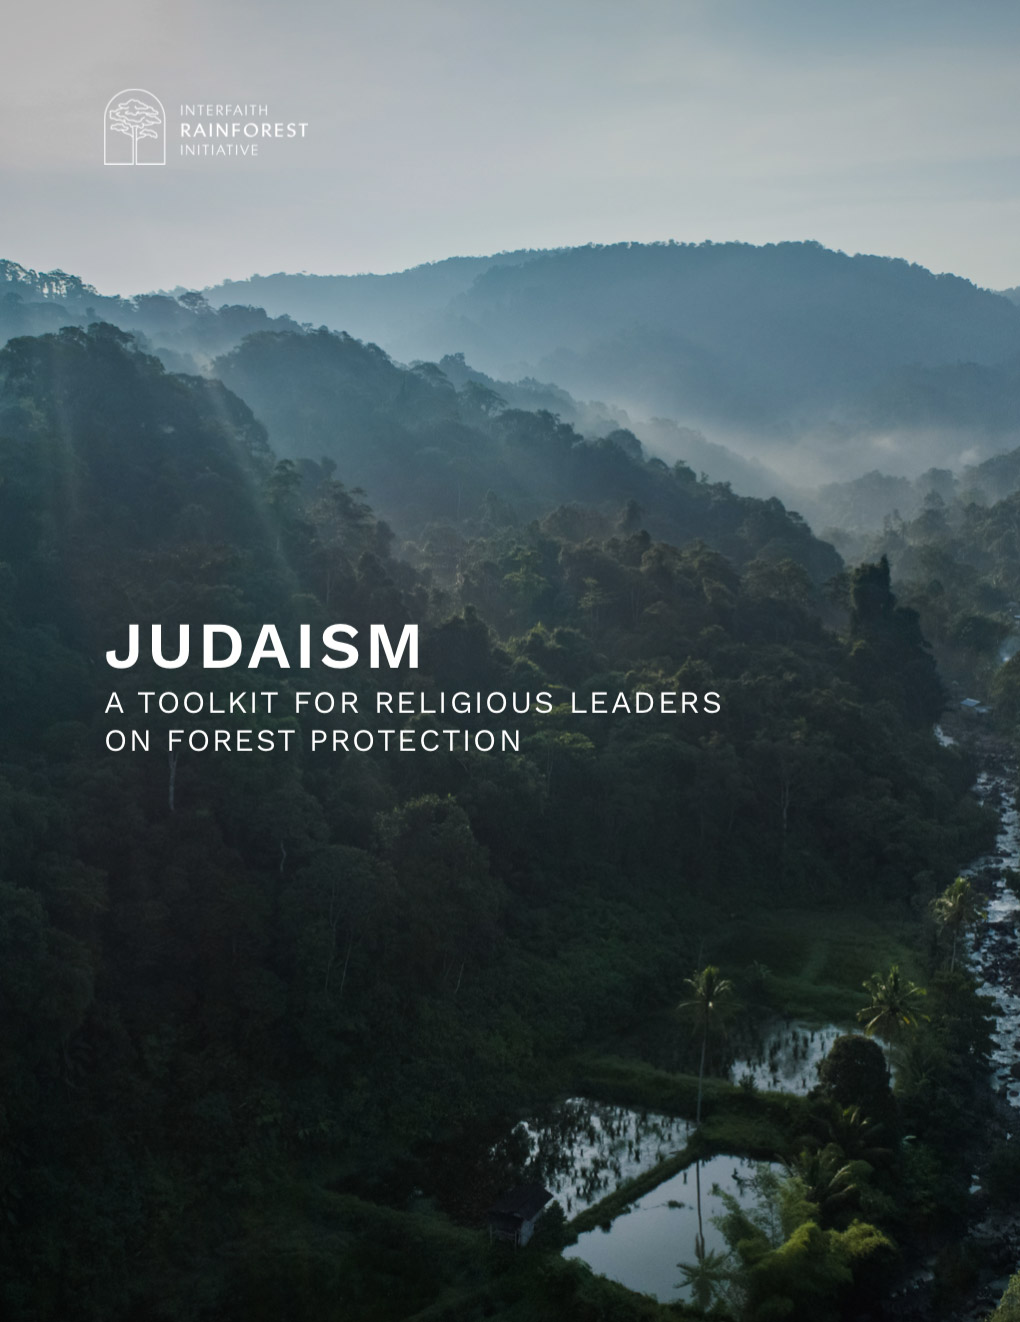 Spiritual reflections, sample prayers and liturgies, talking points and a lesson plan on forests for the Jewish faith.